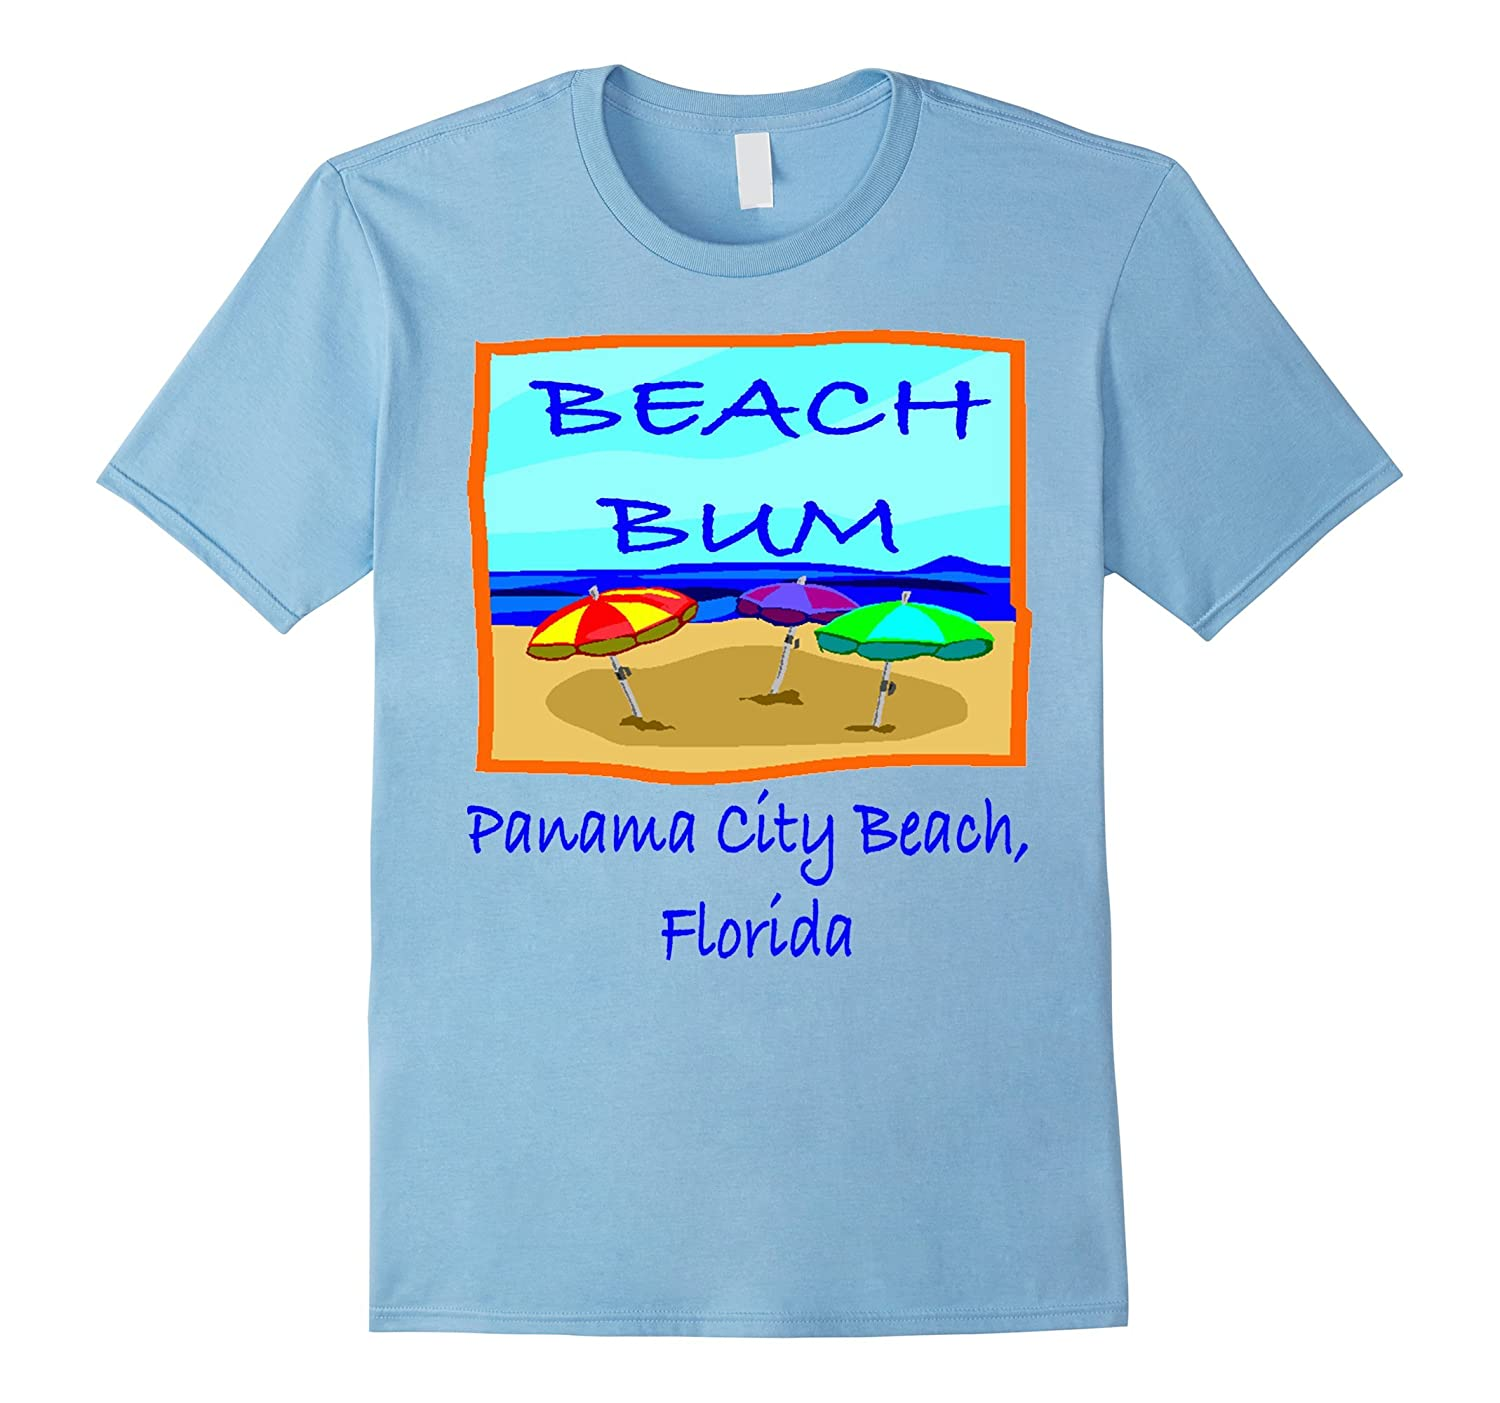 Beach Bum Panama City Beach Florida tee shirt-CD